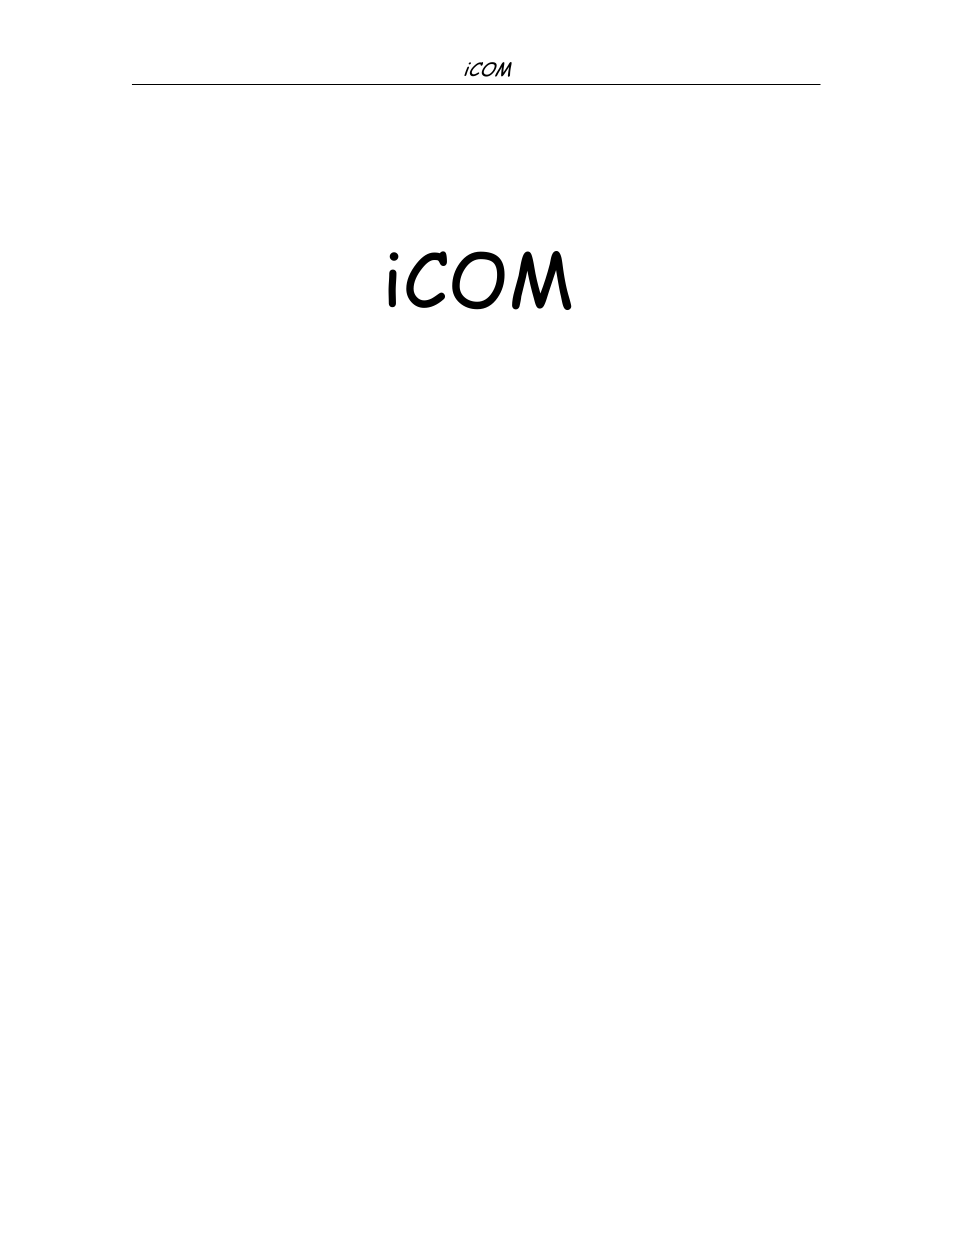 Icom, Icom training & service manual | Liebert iCOM Microprocessor